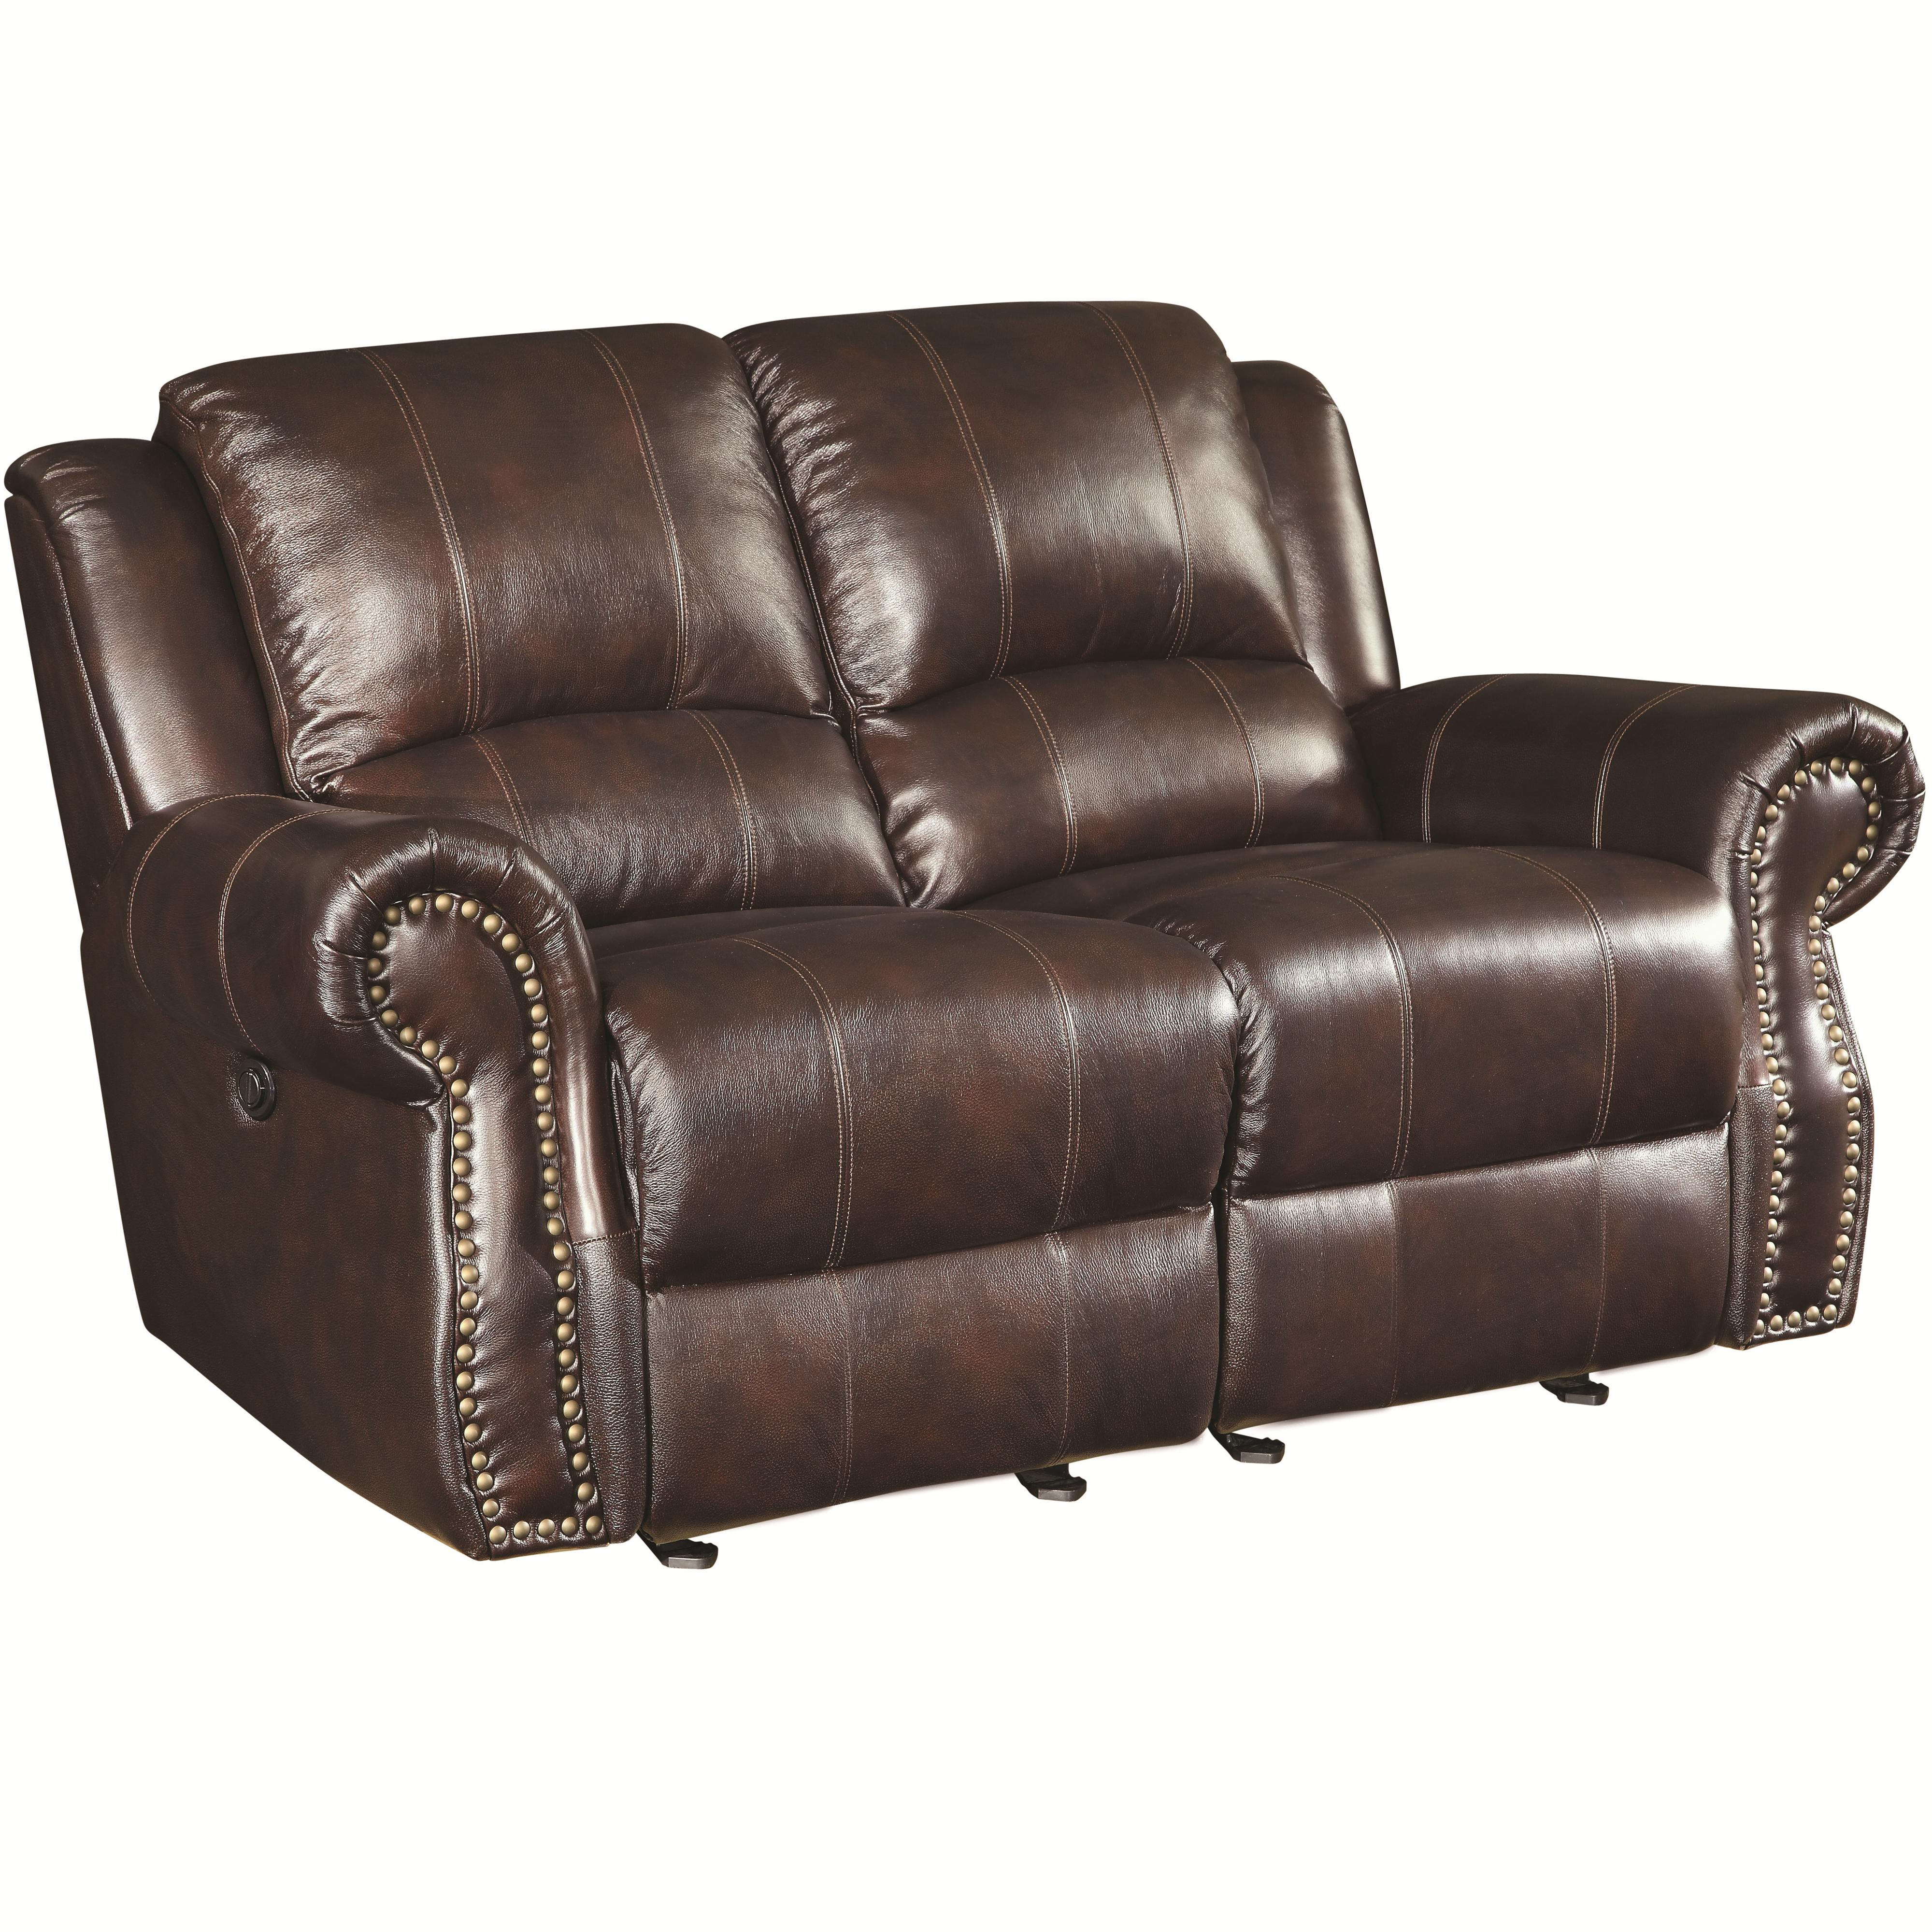 Coaster Sir Rawlinson Gliding Love Seat - Item Number: 650162- Burgundy Brown